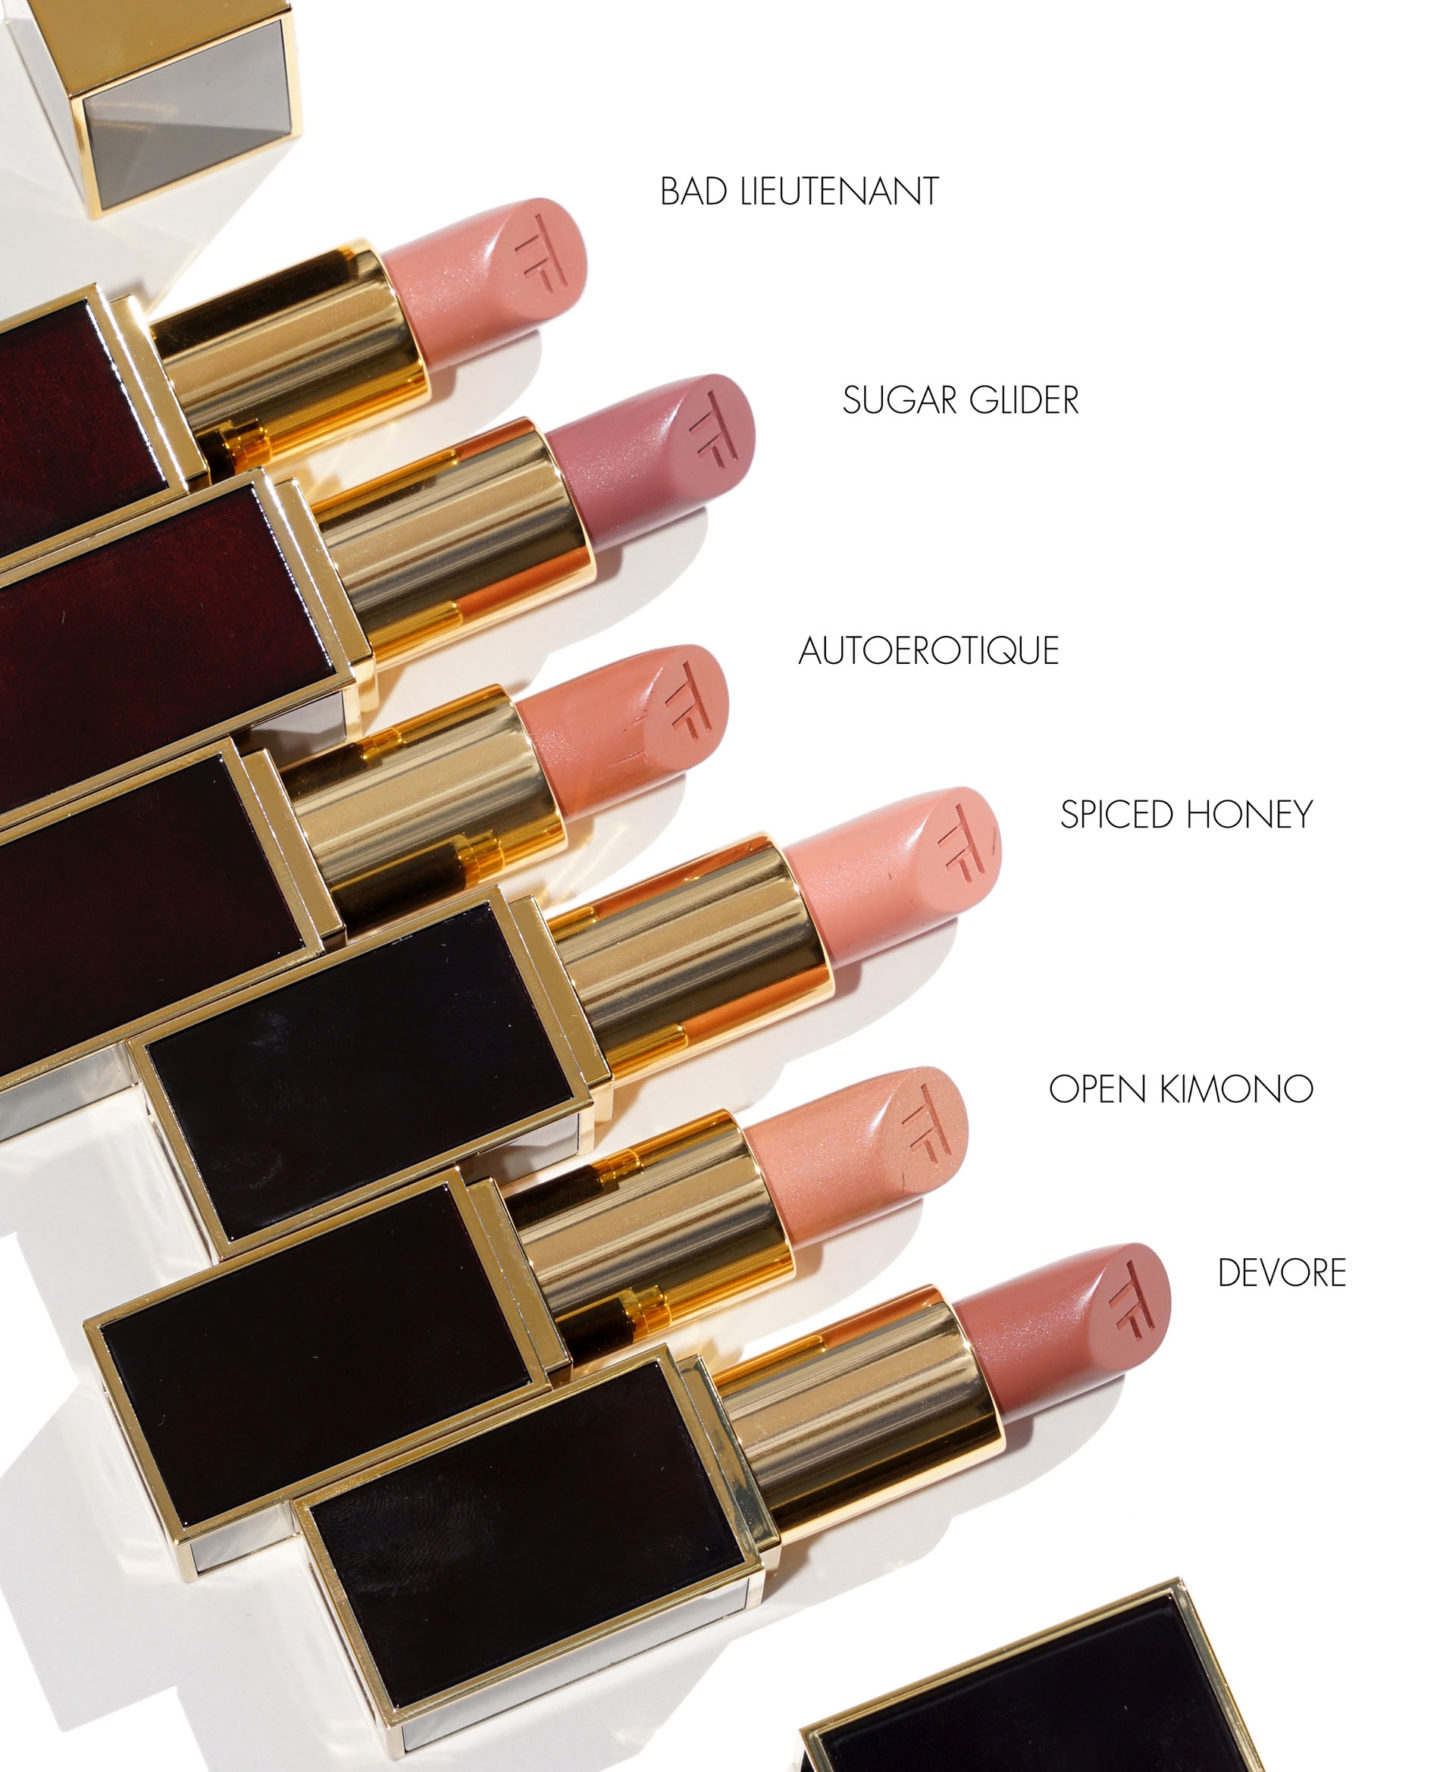 Tom Ford Lipstick Bad Lieutenant, Sugar Glider, Autoerotique, Spiced Honey, Open Kimono, Devore | The Beauty Look Book